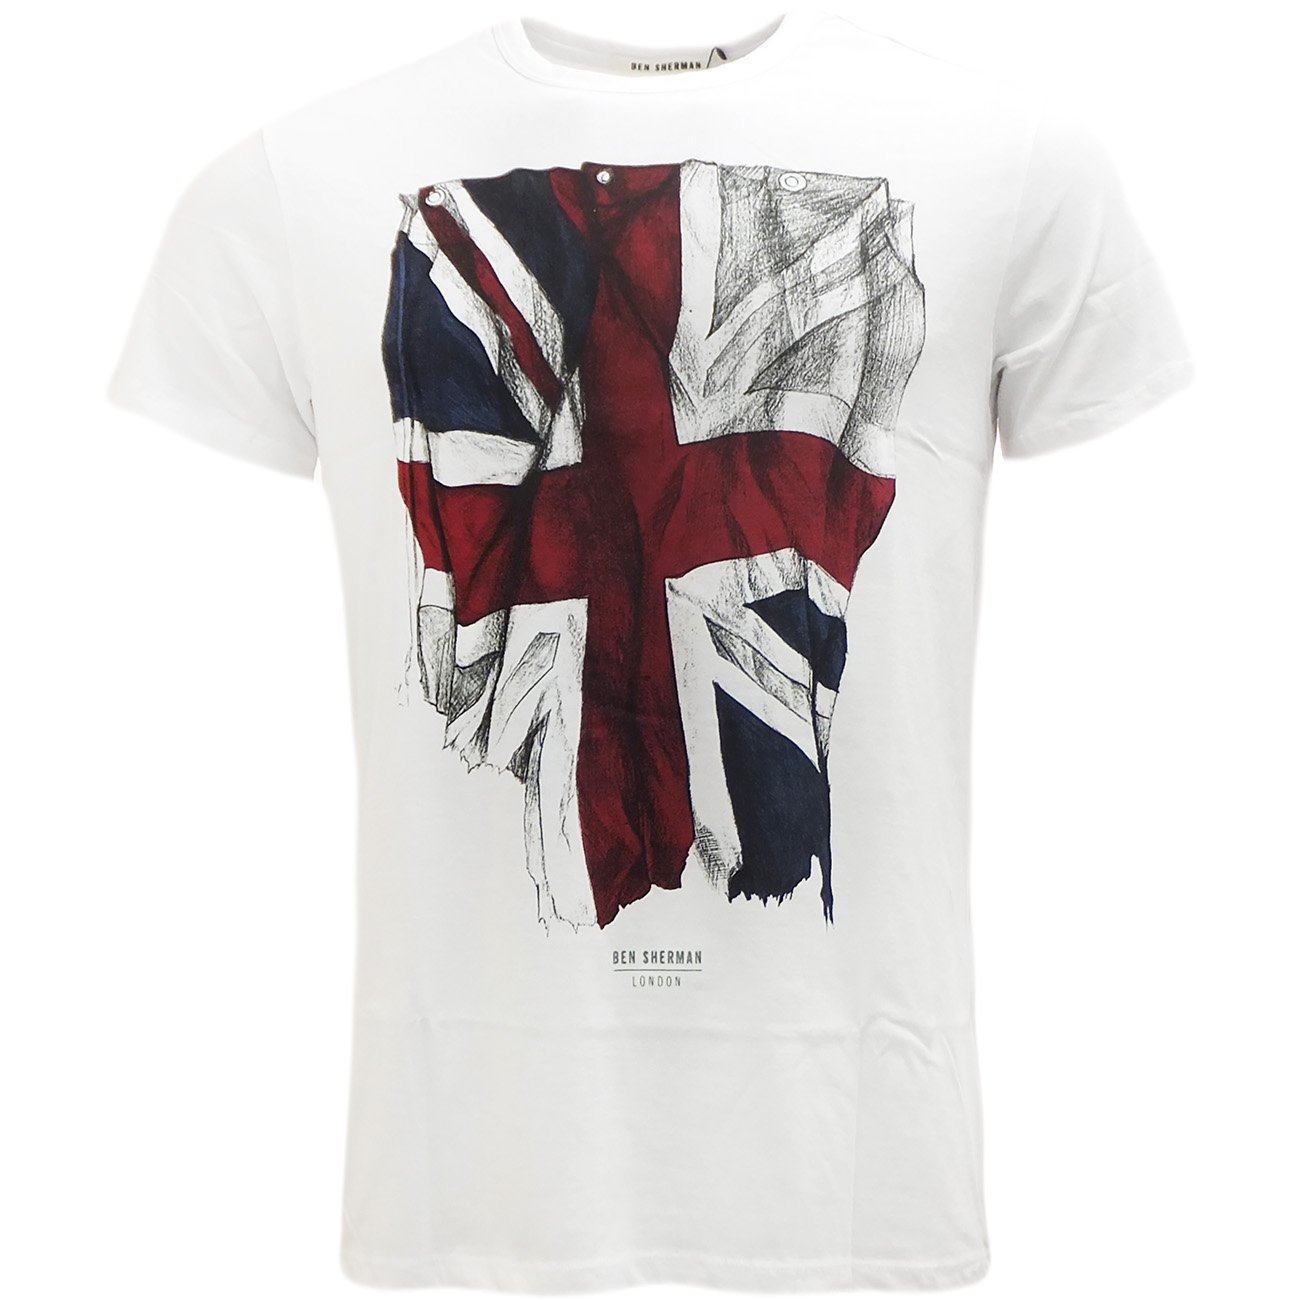 ben sherman t shirt mb11810 ebay